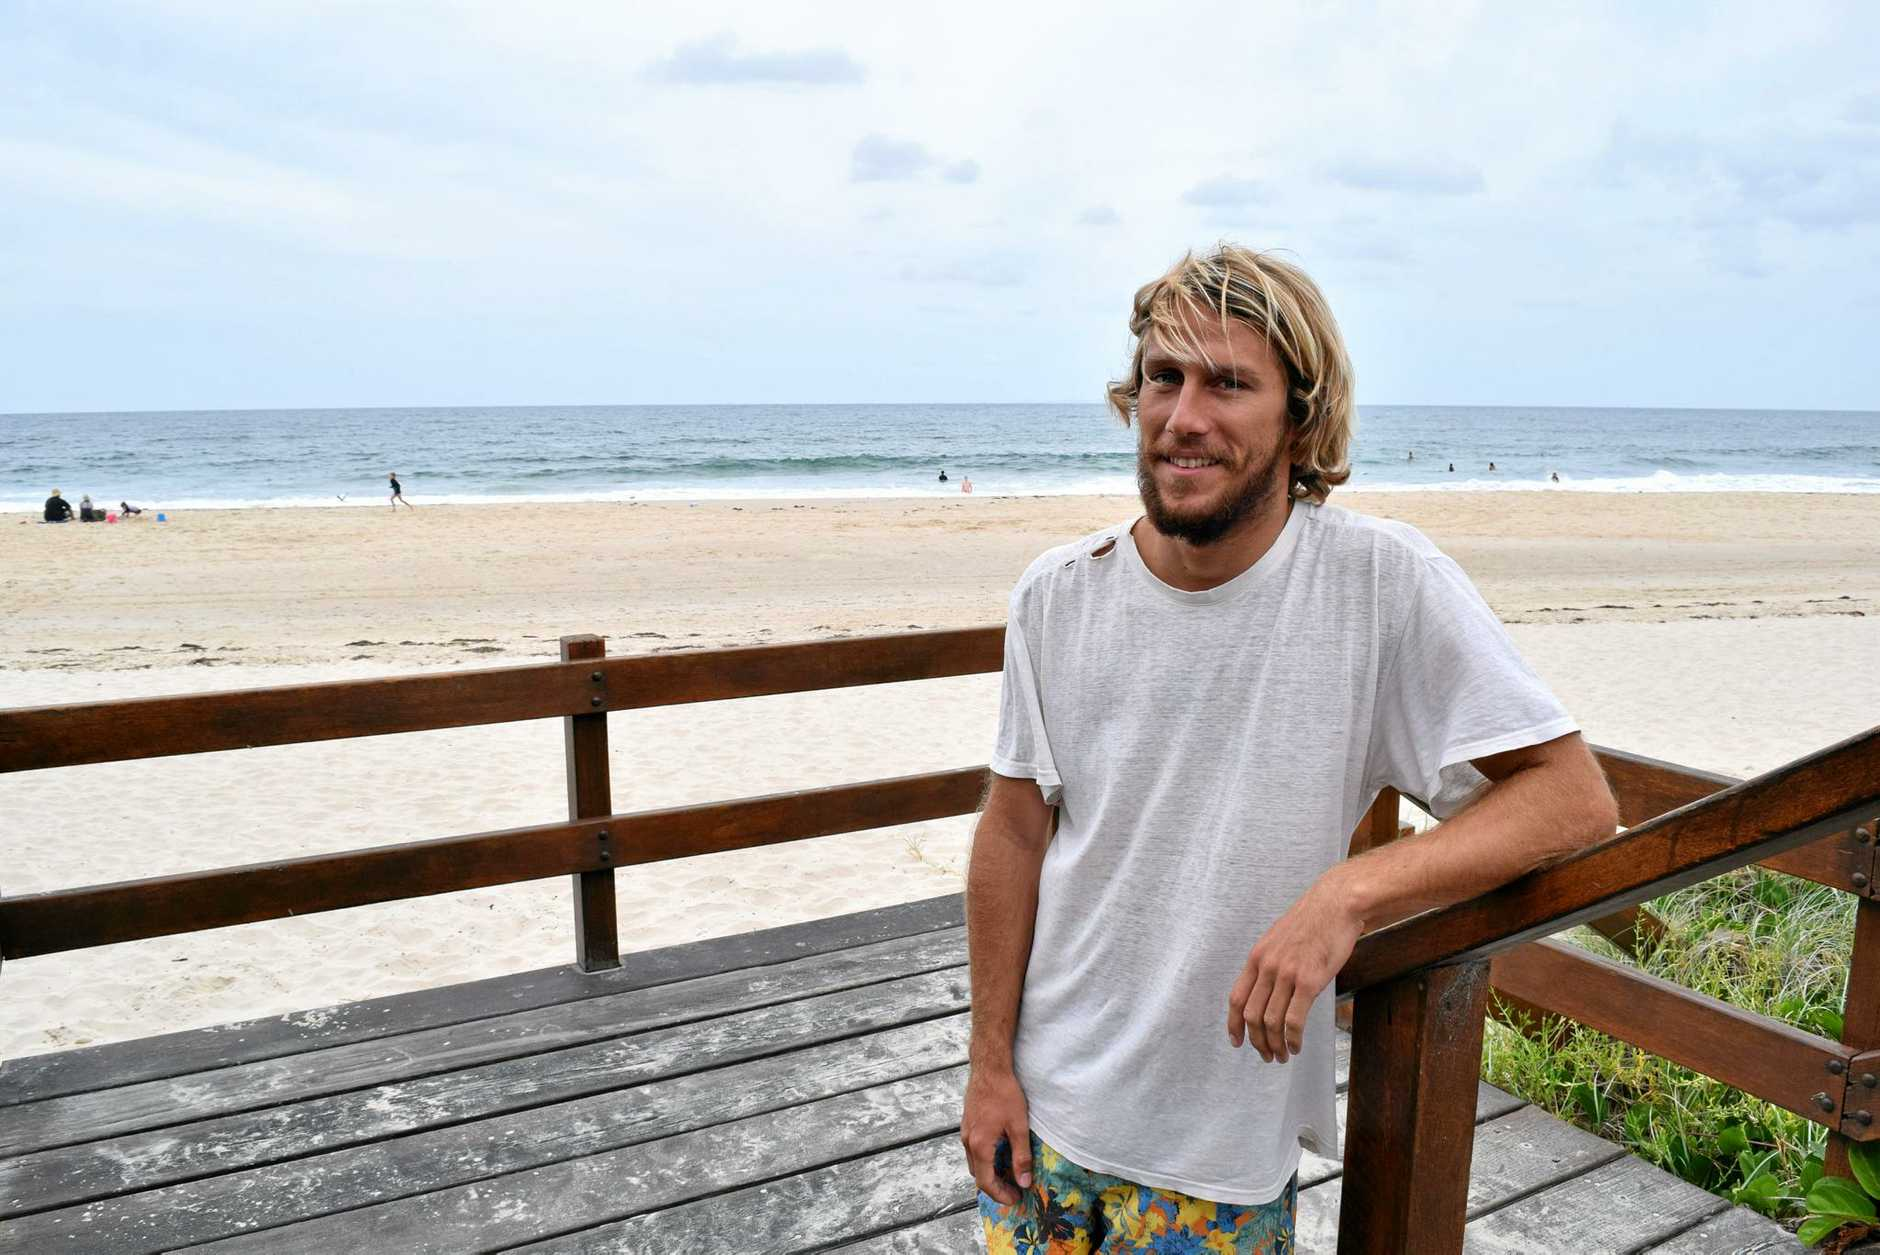 Lifeguard Daniel Robinson's first resuscitation rescue has turned out to be a successful one.